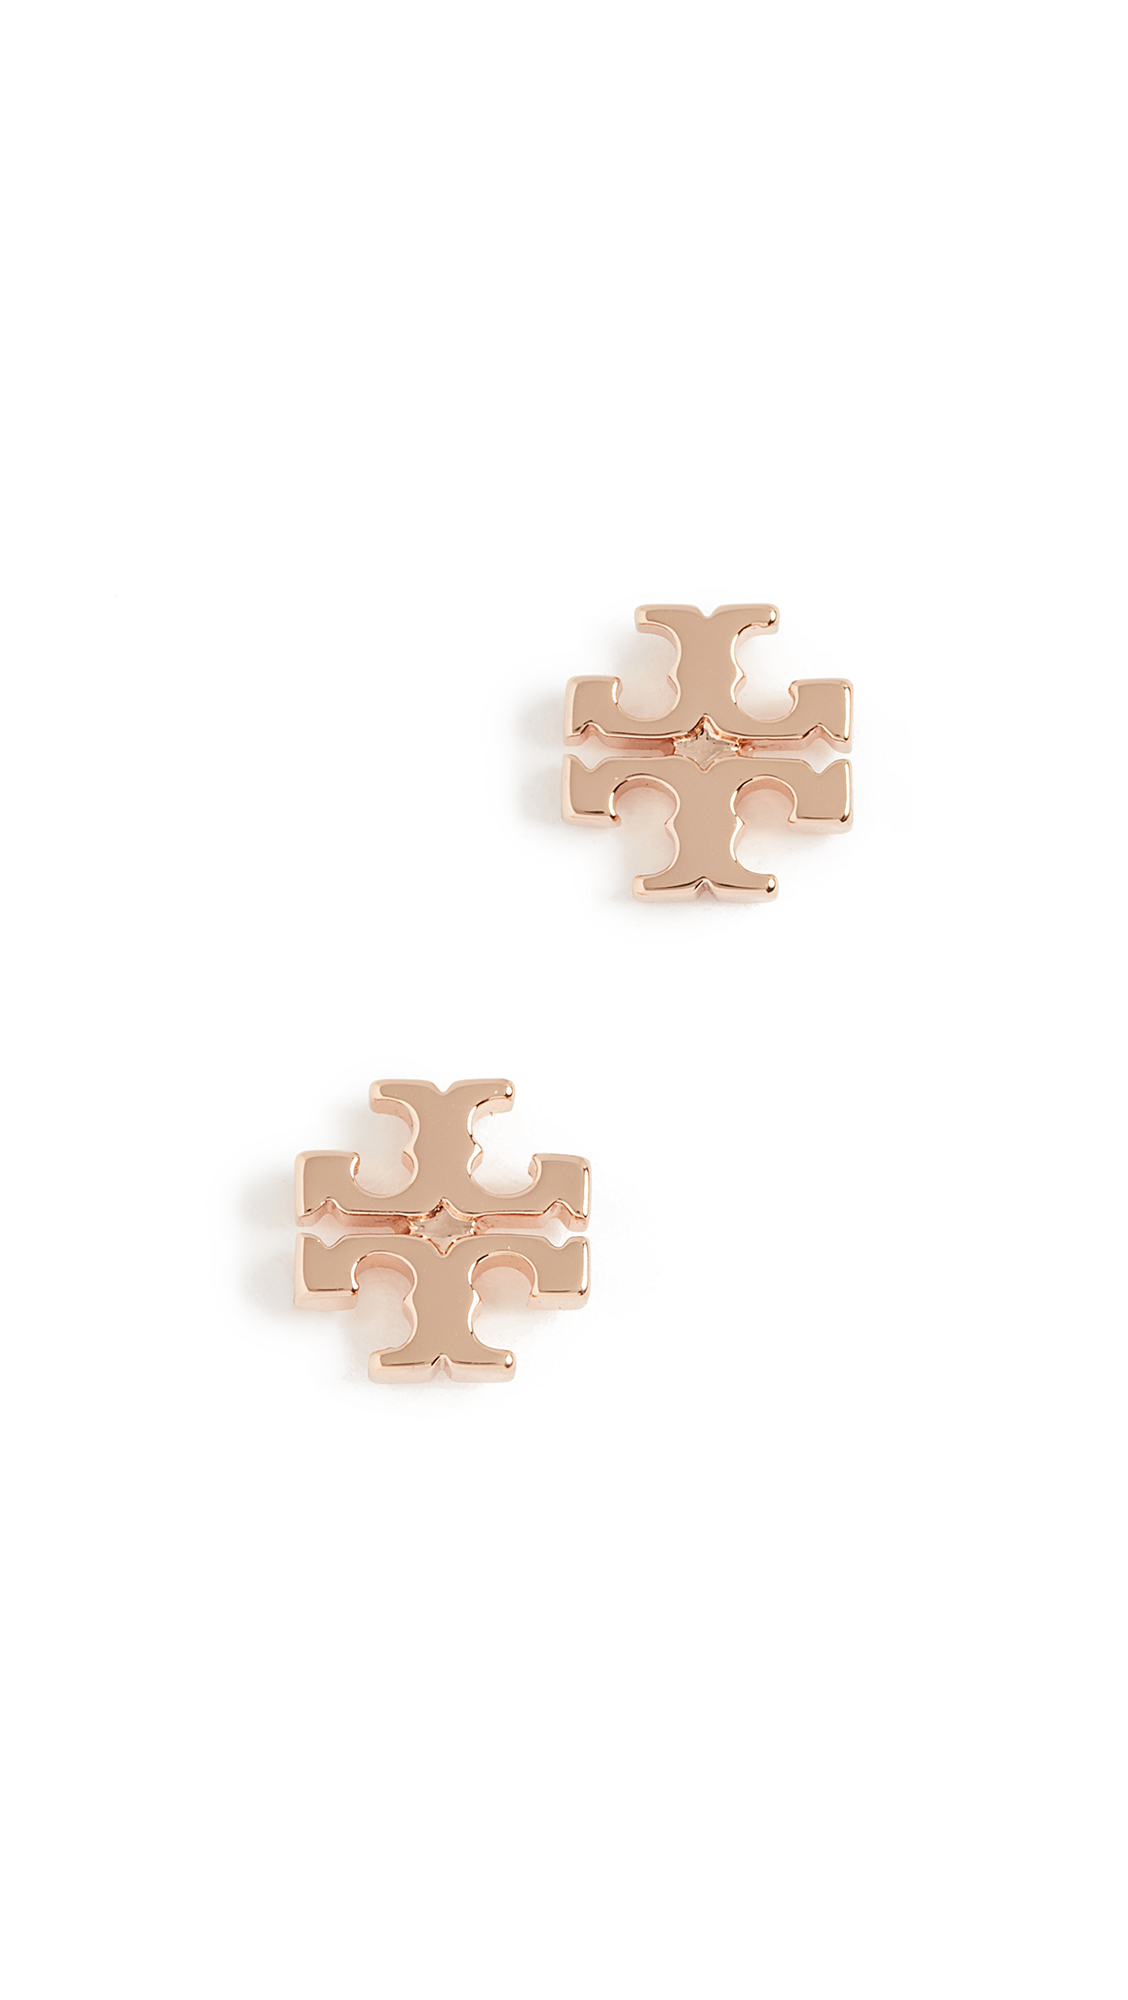 Tory Burch Logo Stud Earrings - Rose Gold